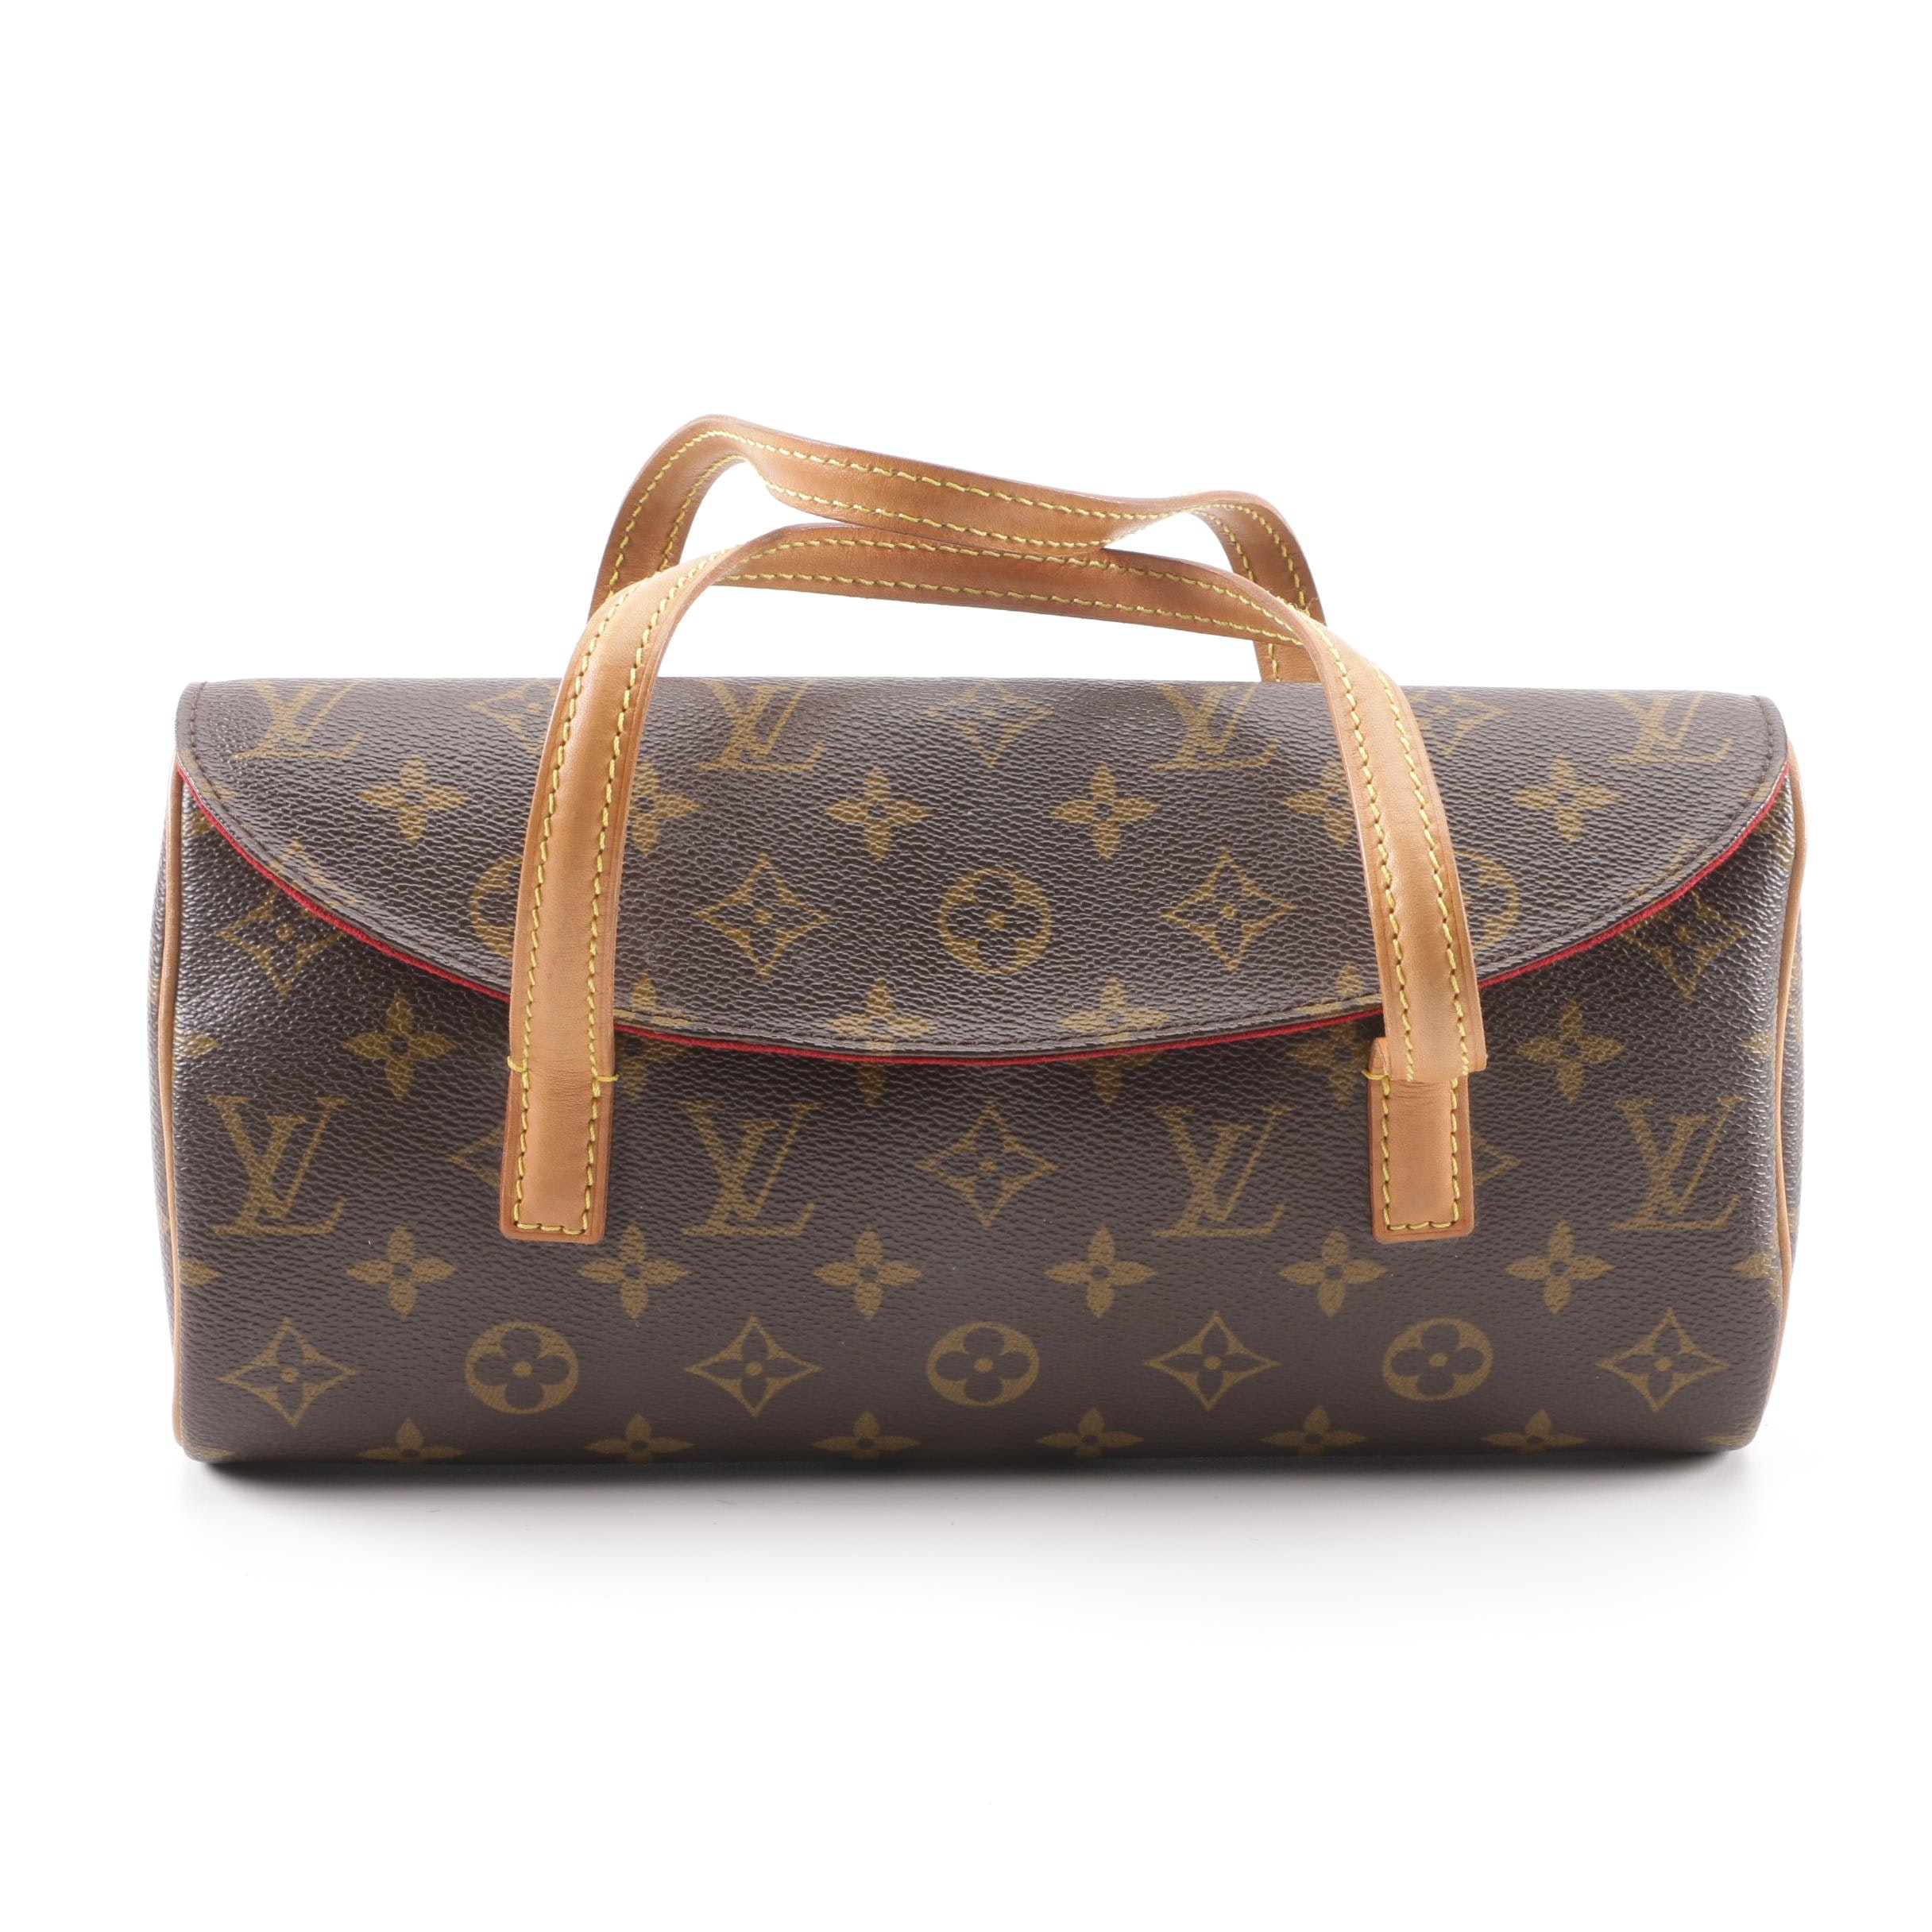 2002 Louis Vuitton Paris Monogram Canvas Sonatine Bag